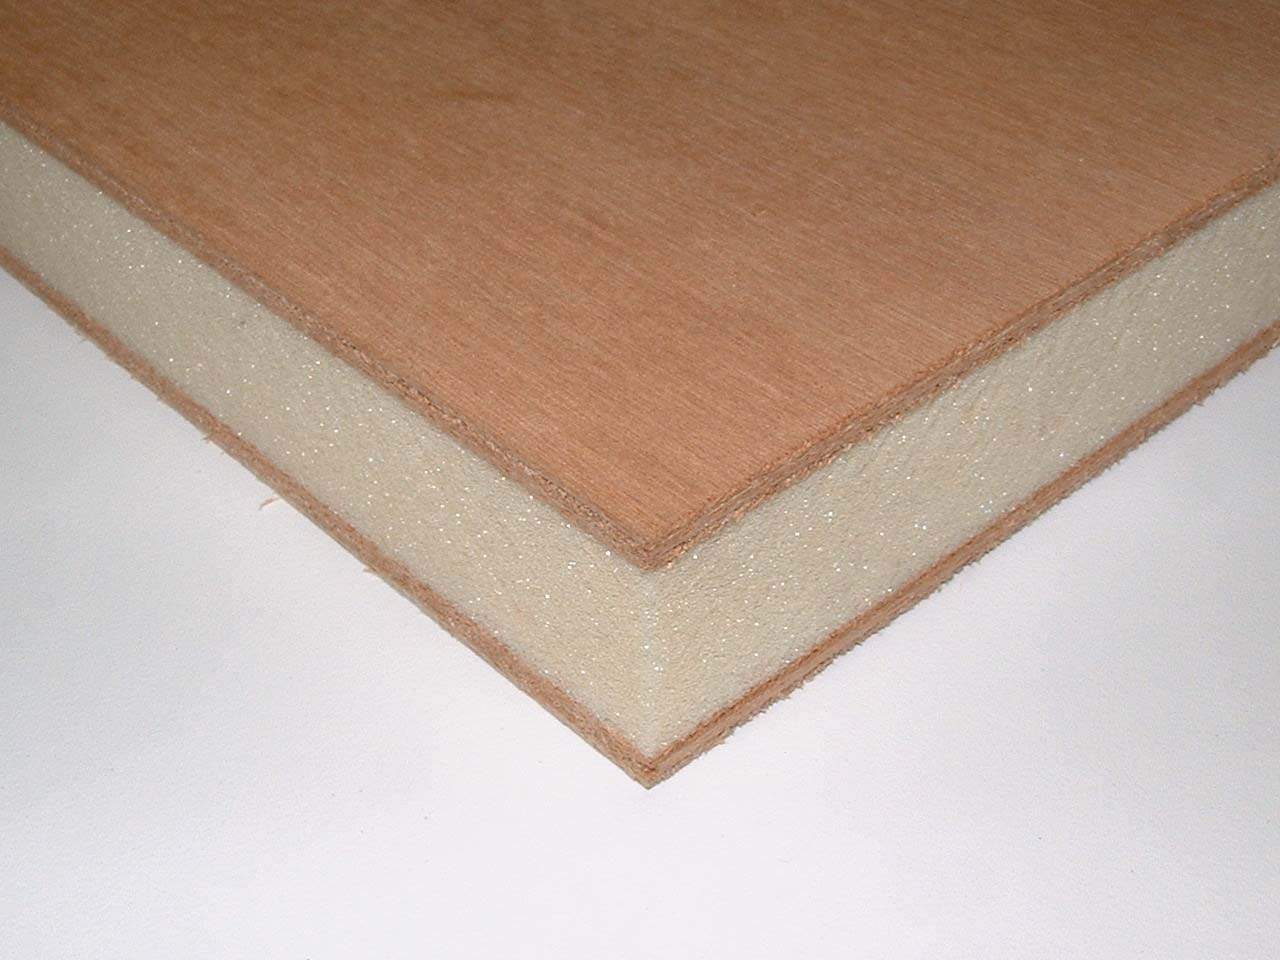 Foamboard has a rot-resistant feature and the best alternative to plywood.